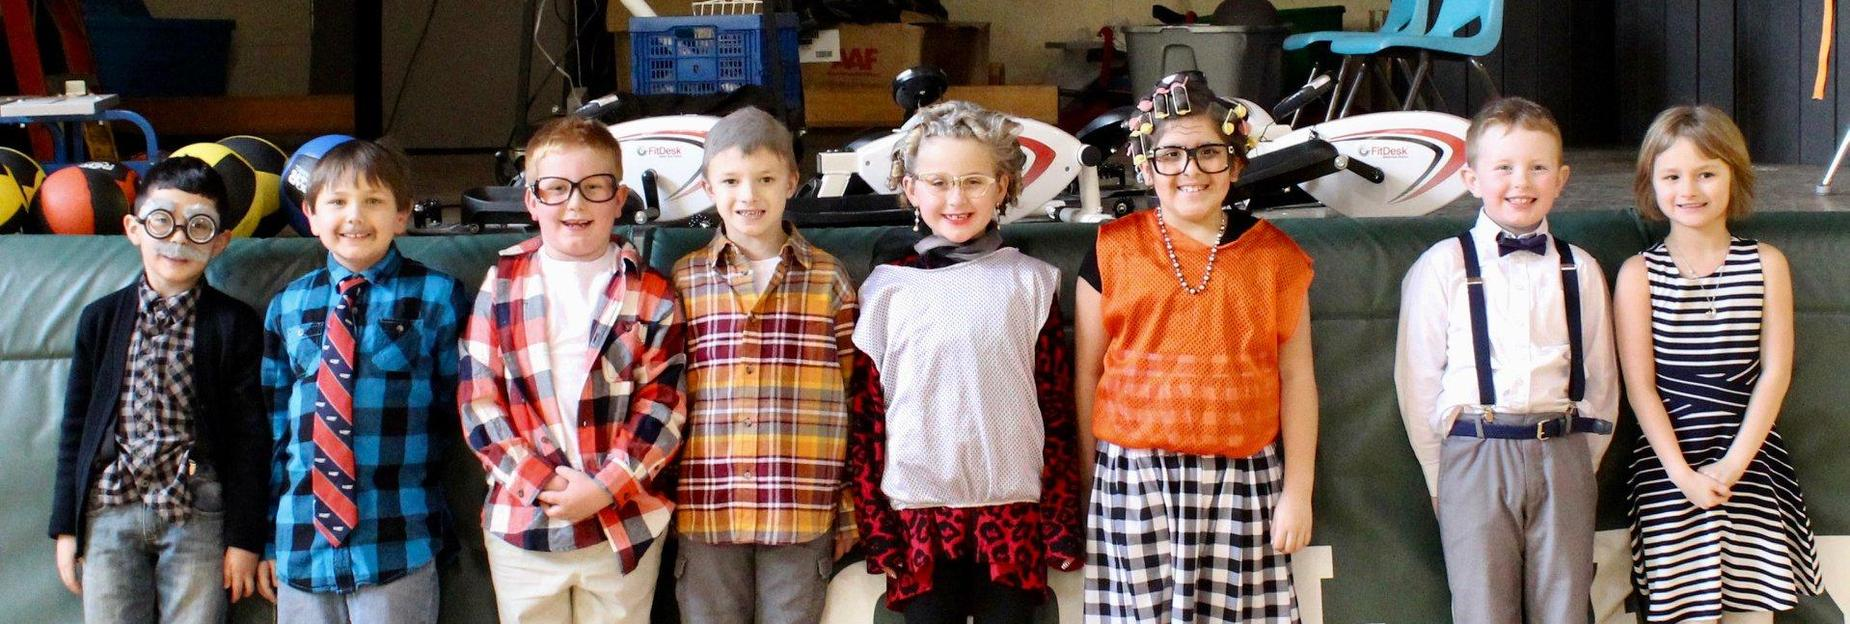 Dress up day at CCES